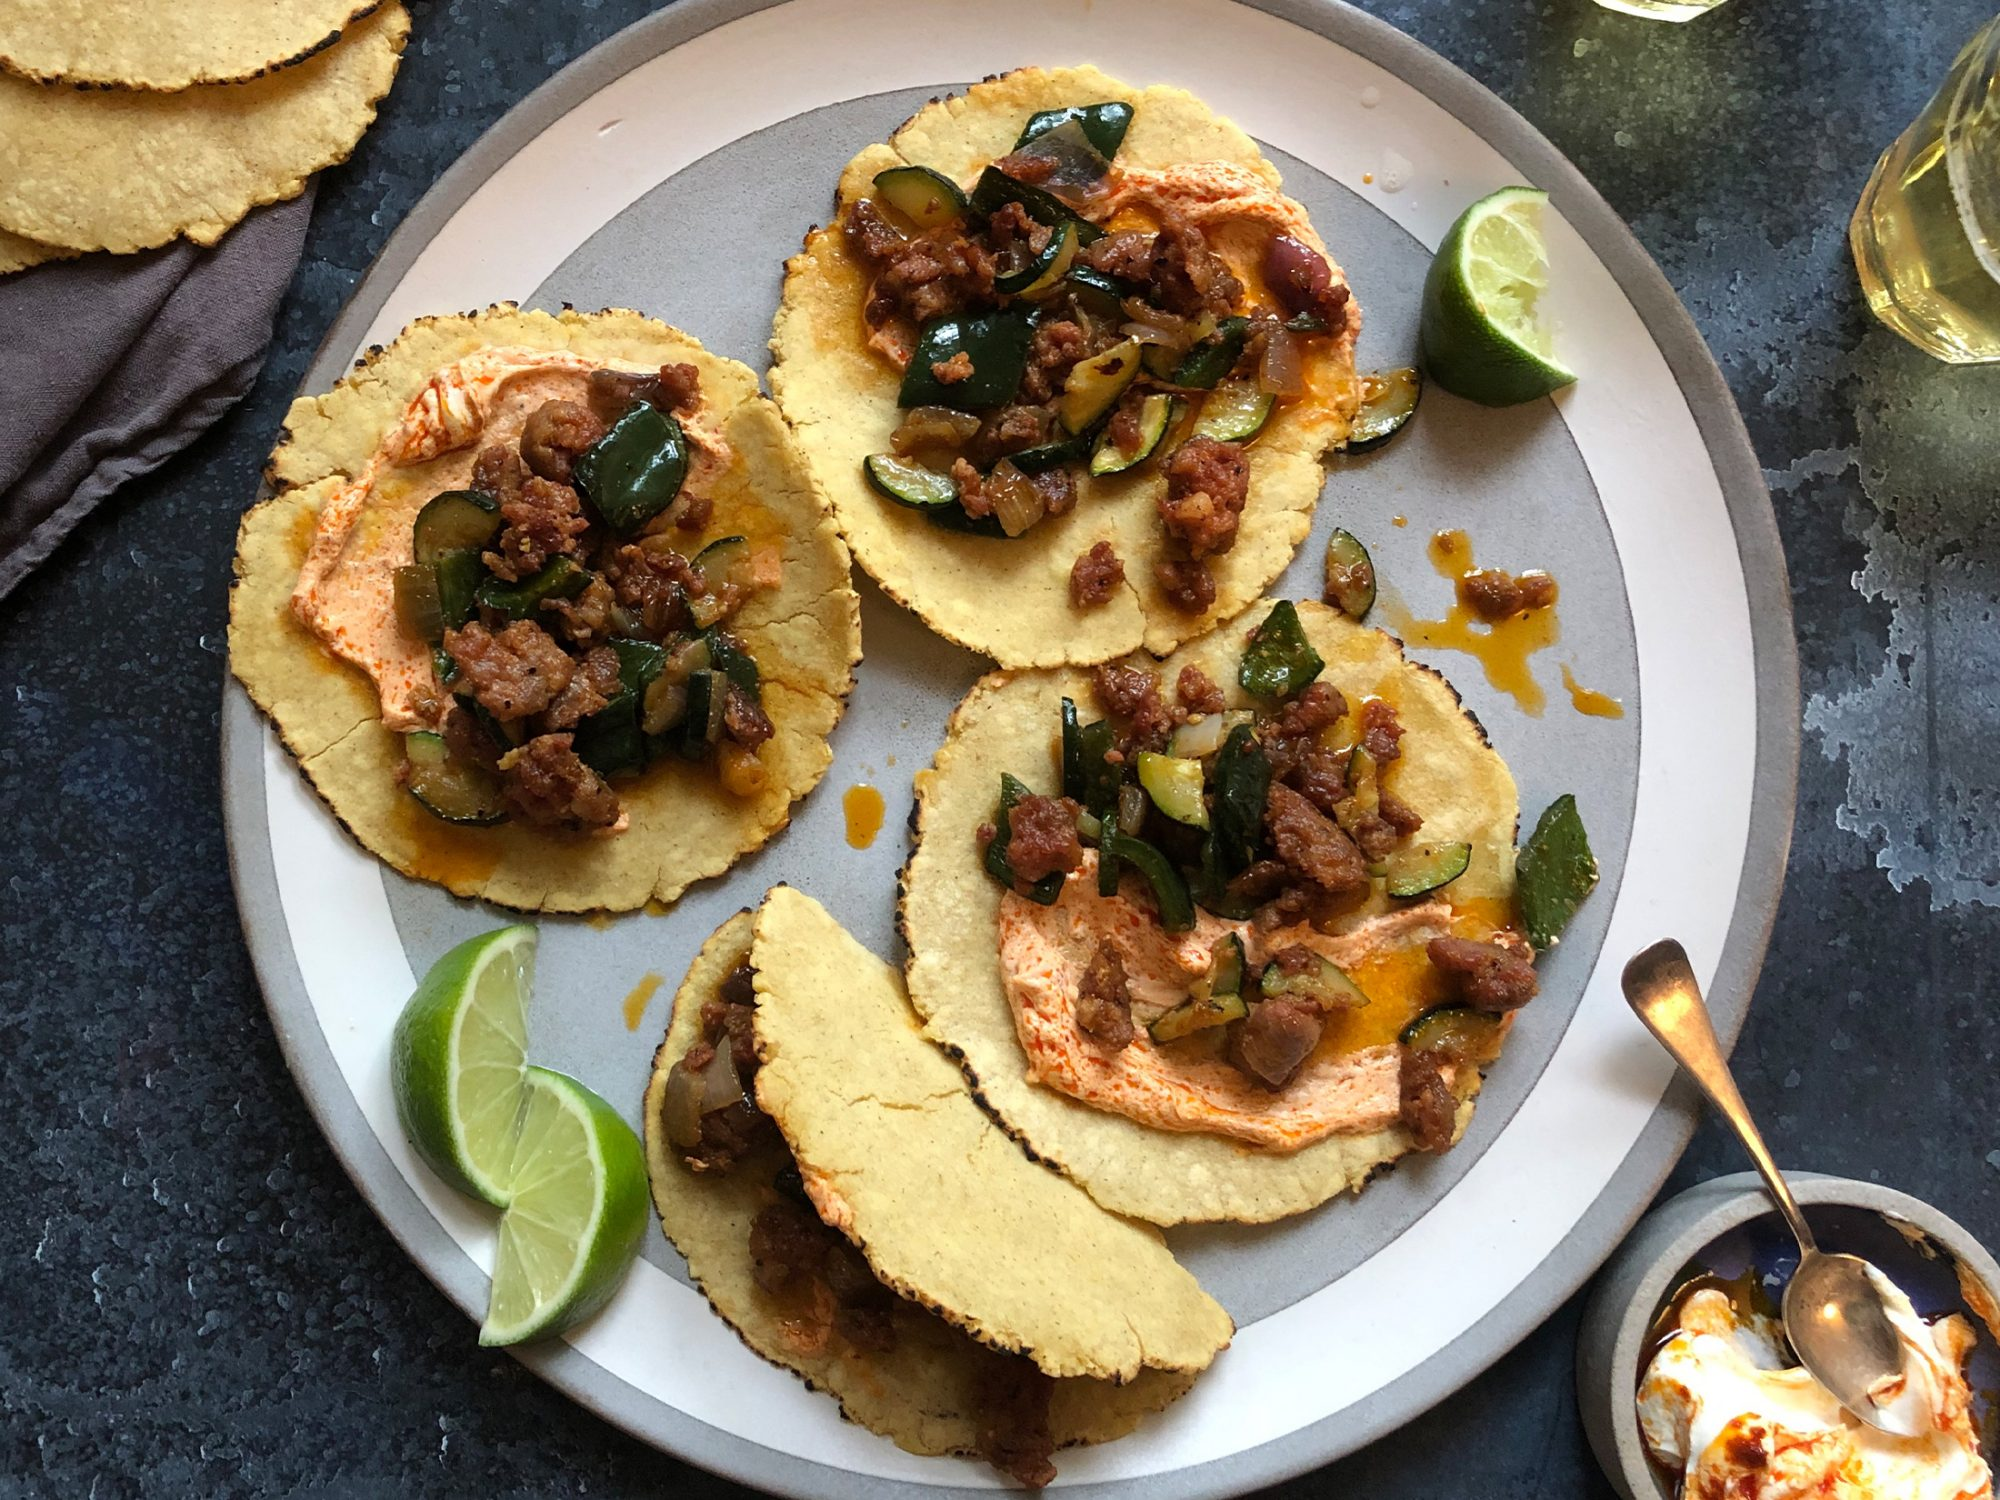 Spicy Sausage Tacos with Zucchini and Poblanos